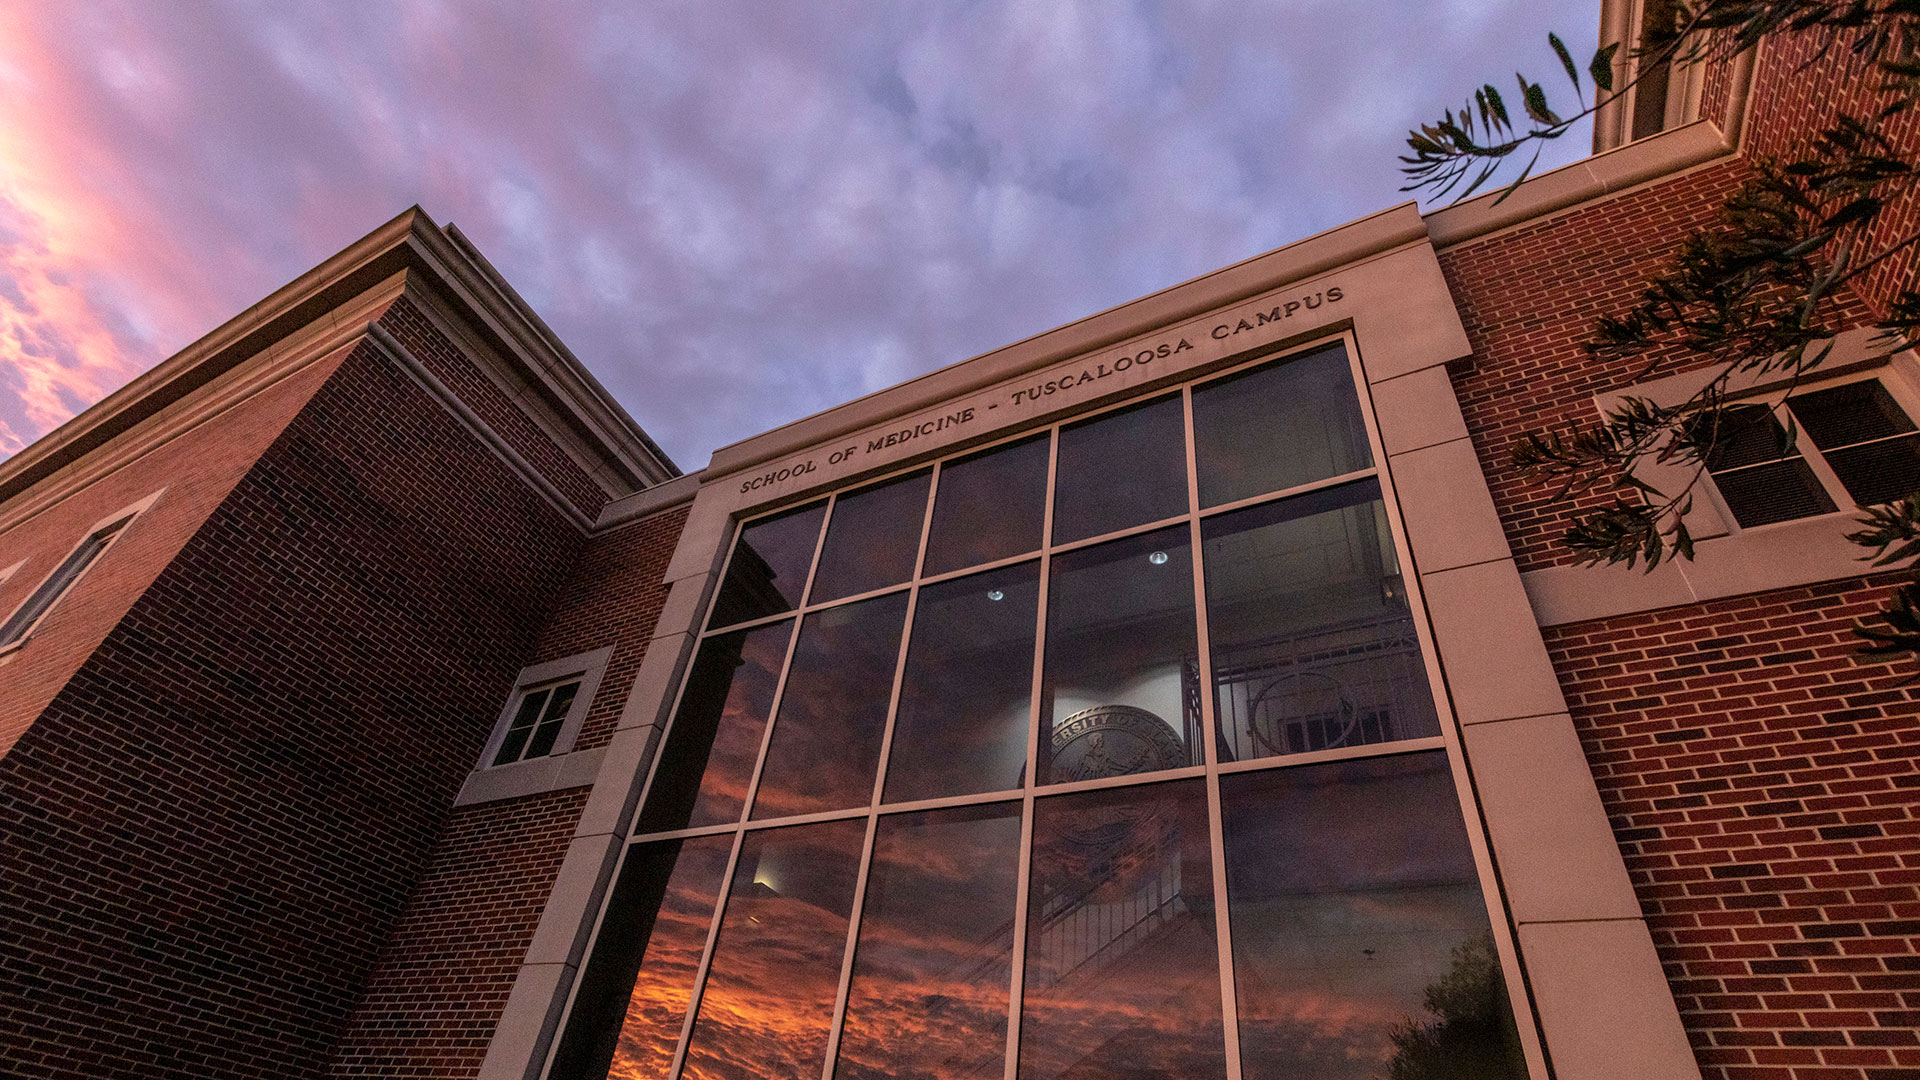 tuscaloosa regional campus building at sunset